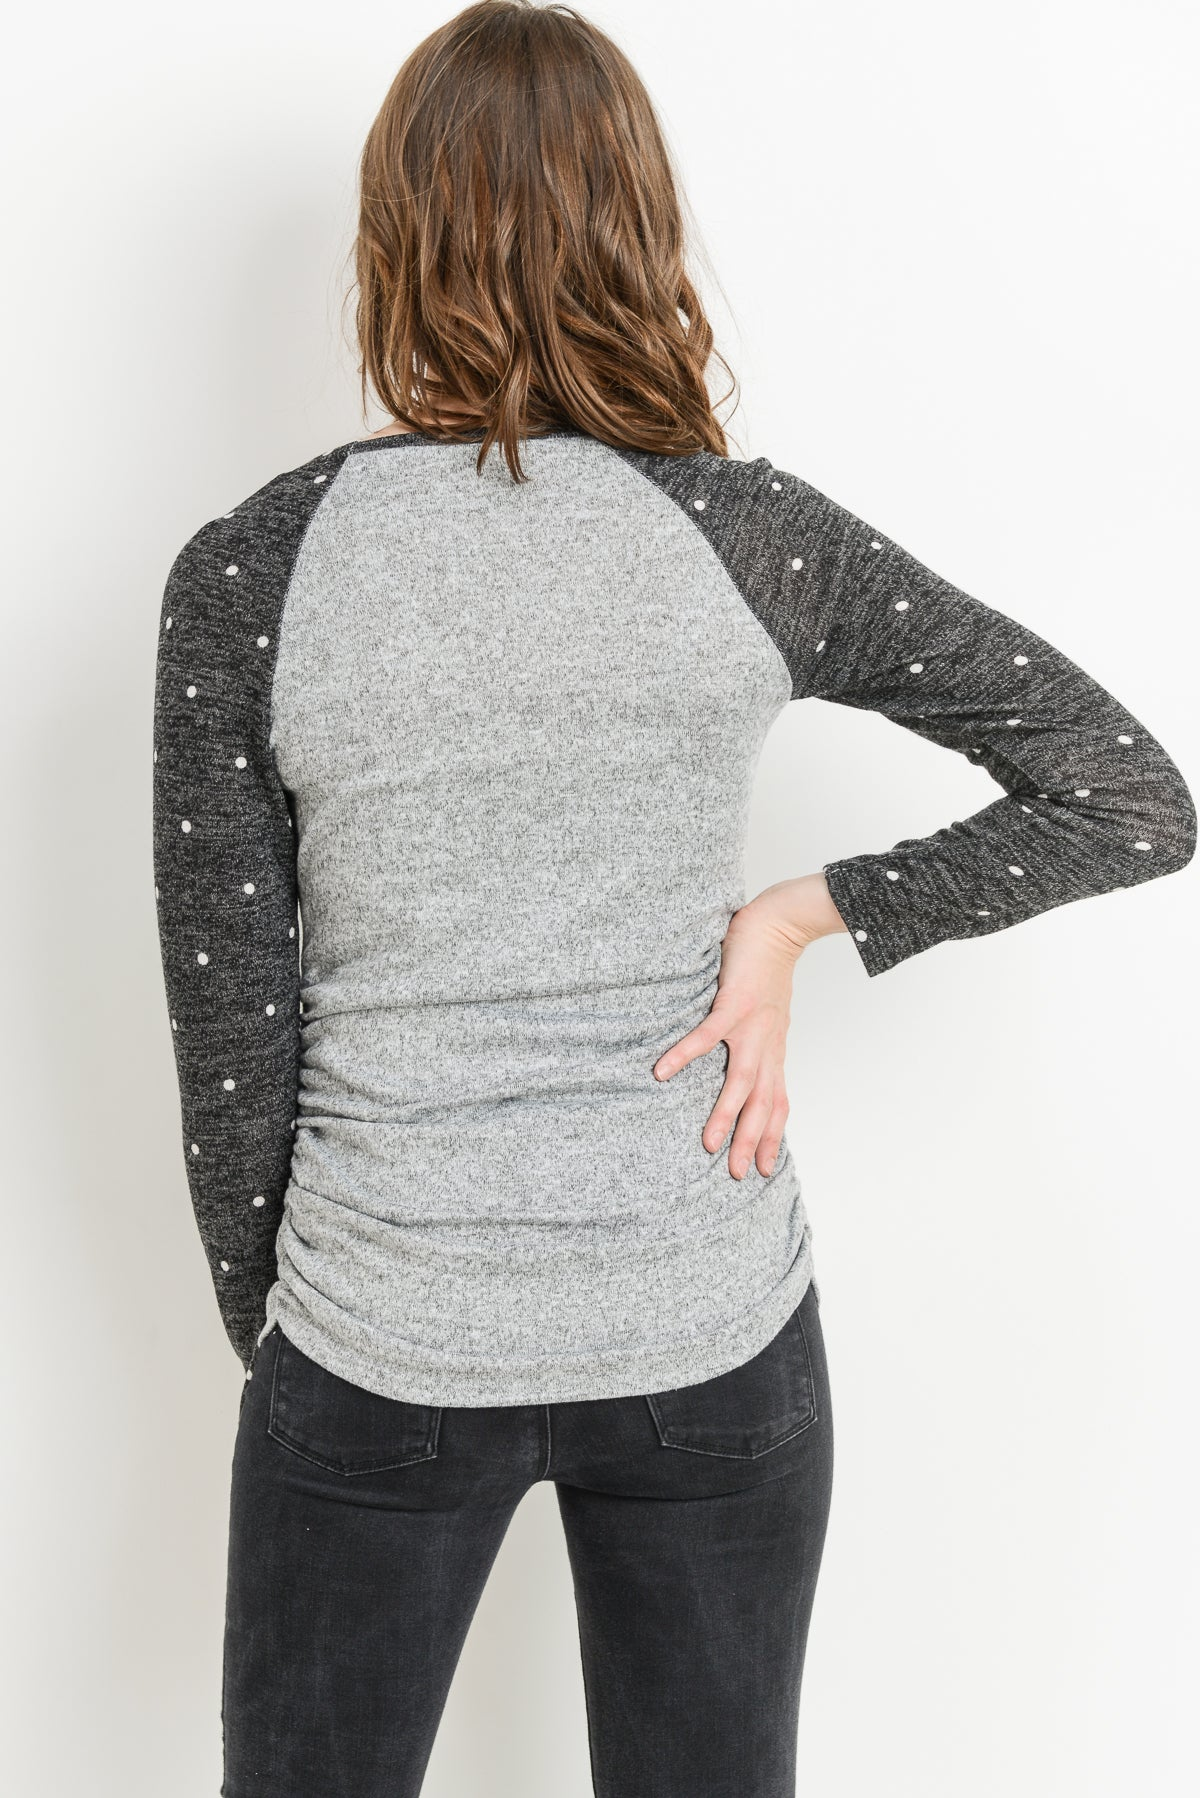 Polka Dot Sleeve Raglan Maternity Sweater Top